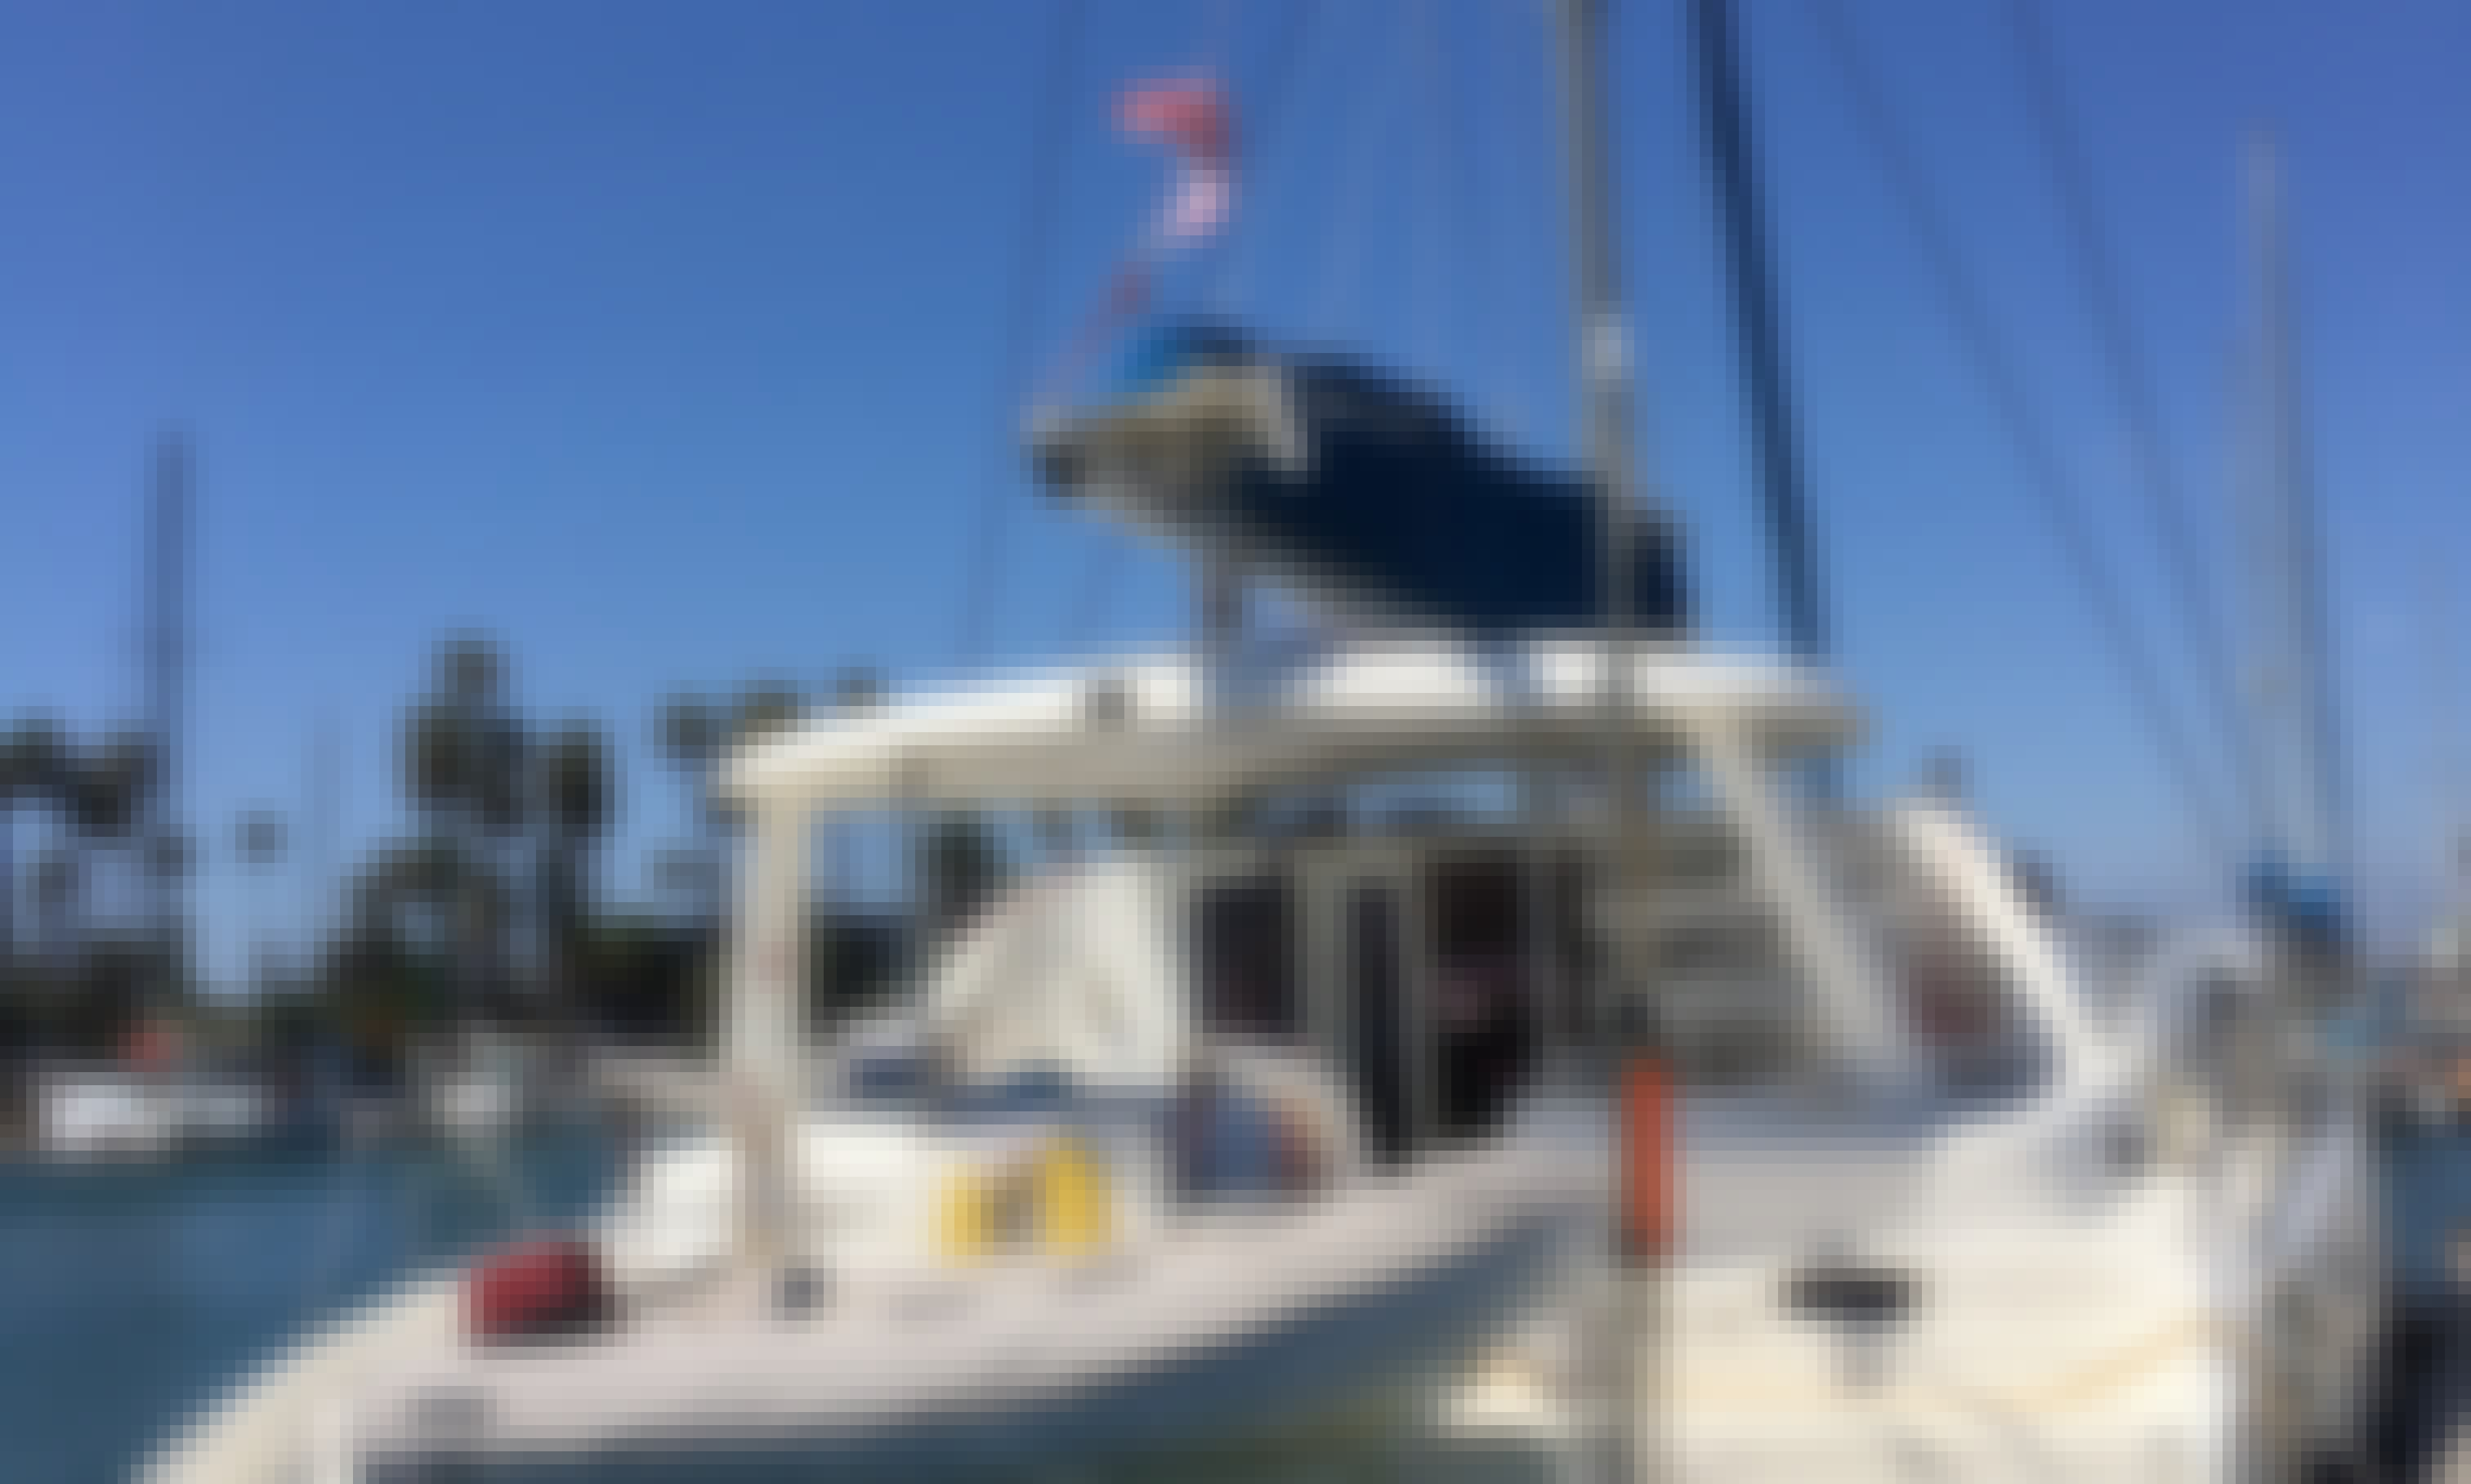 Explore the Ventura coast in style with this 43' Leopard sailing catamaran!